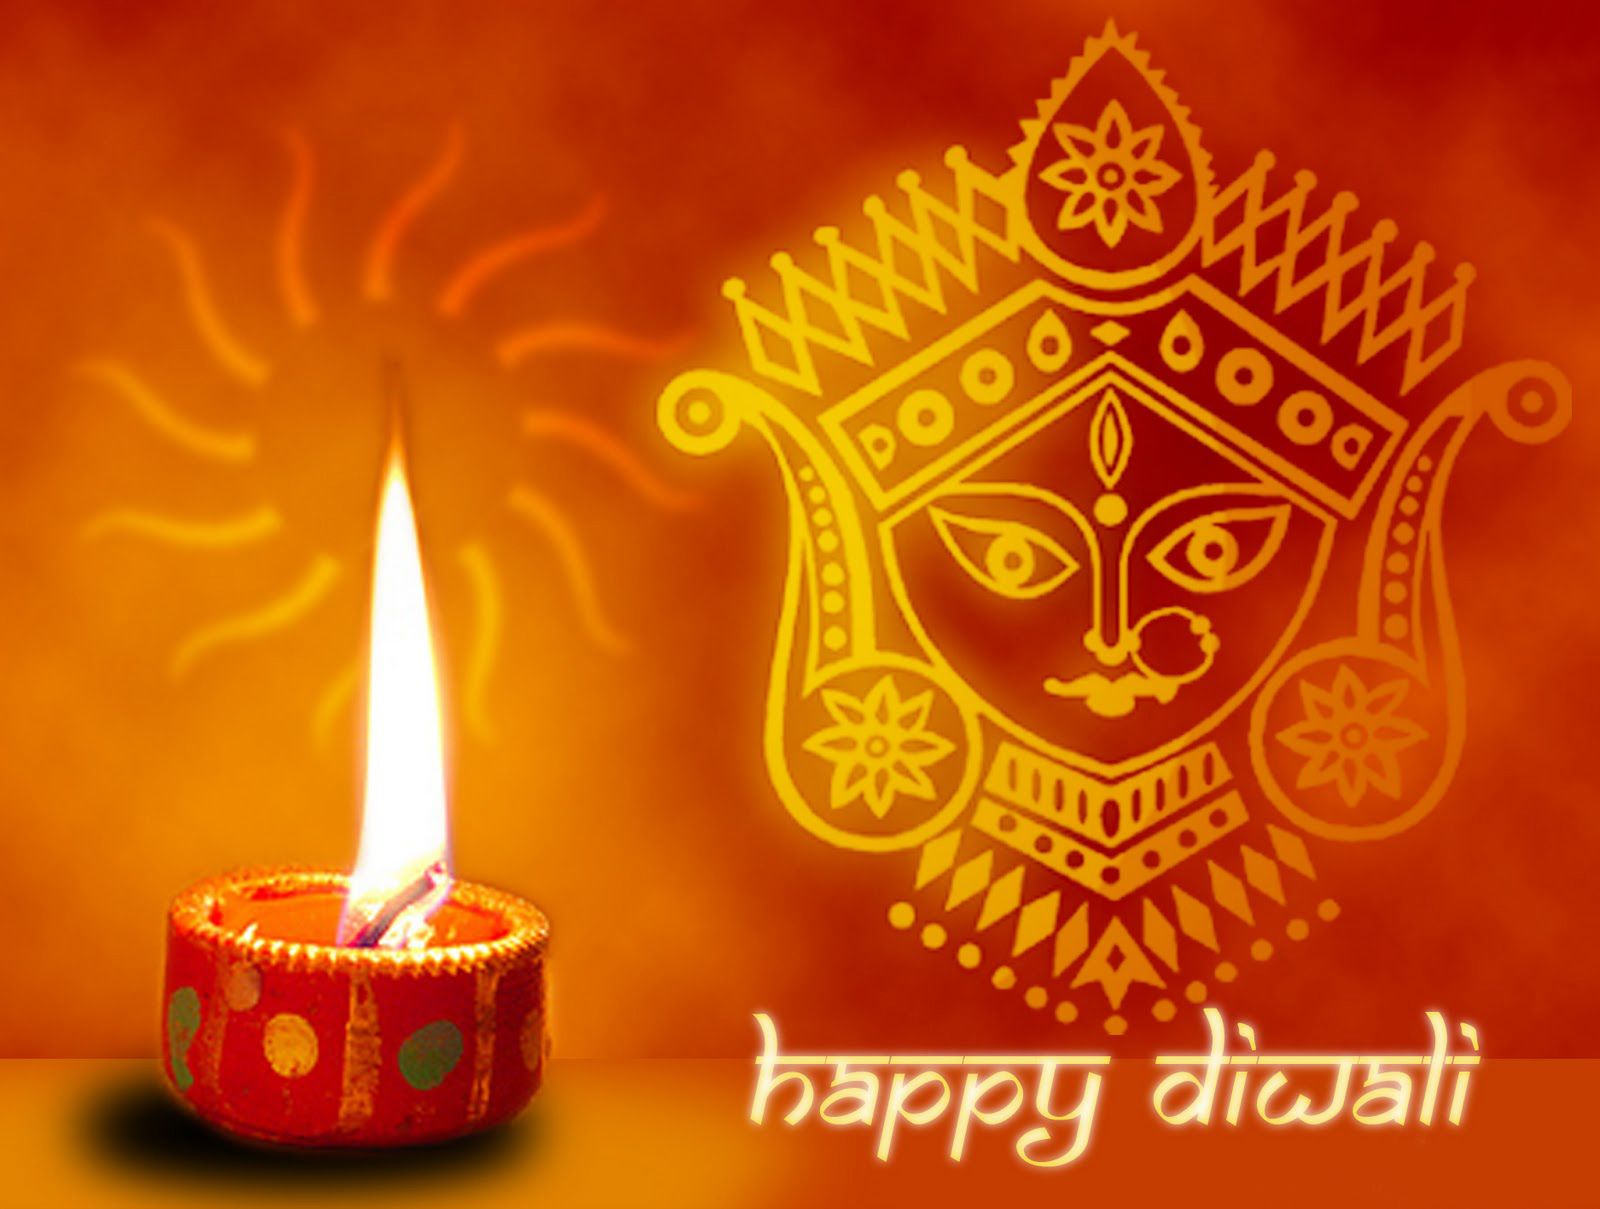 essay on diwali festivals of lights Essay on diwali festival,essay on diwali rituals,essay on diwali celebrations - download as pdf file (pdf), text file (txt) or read online.